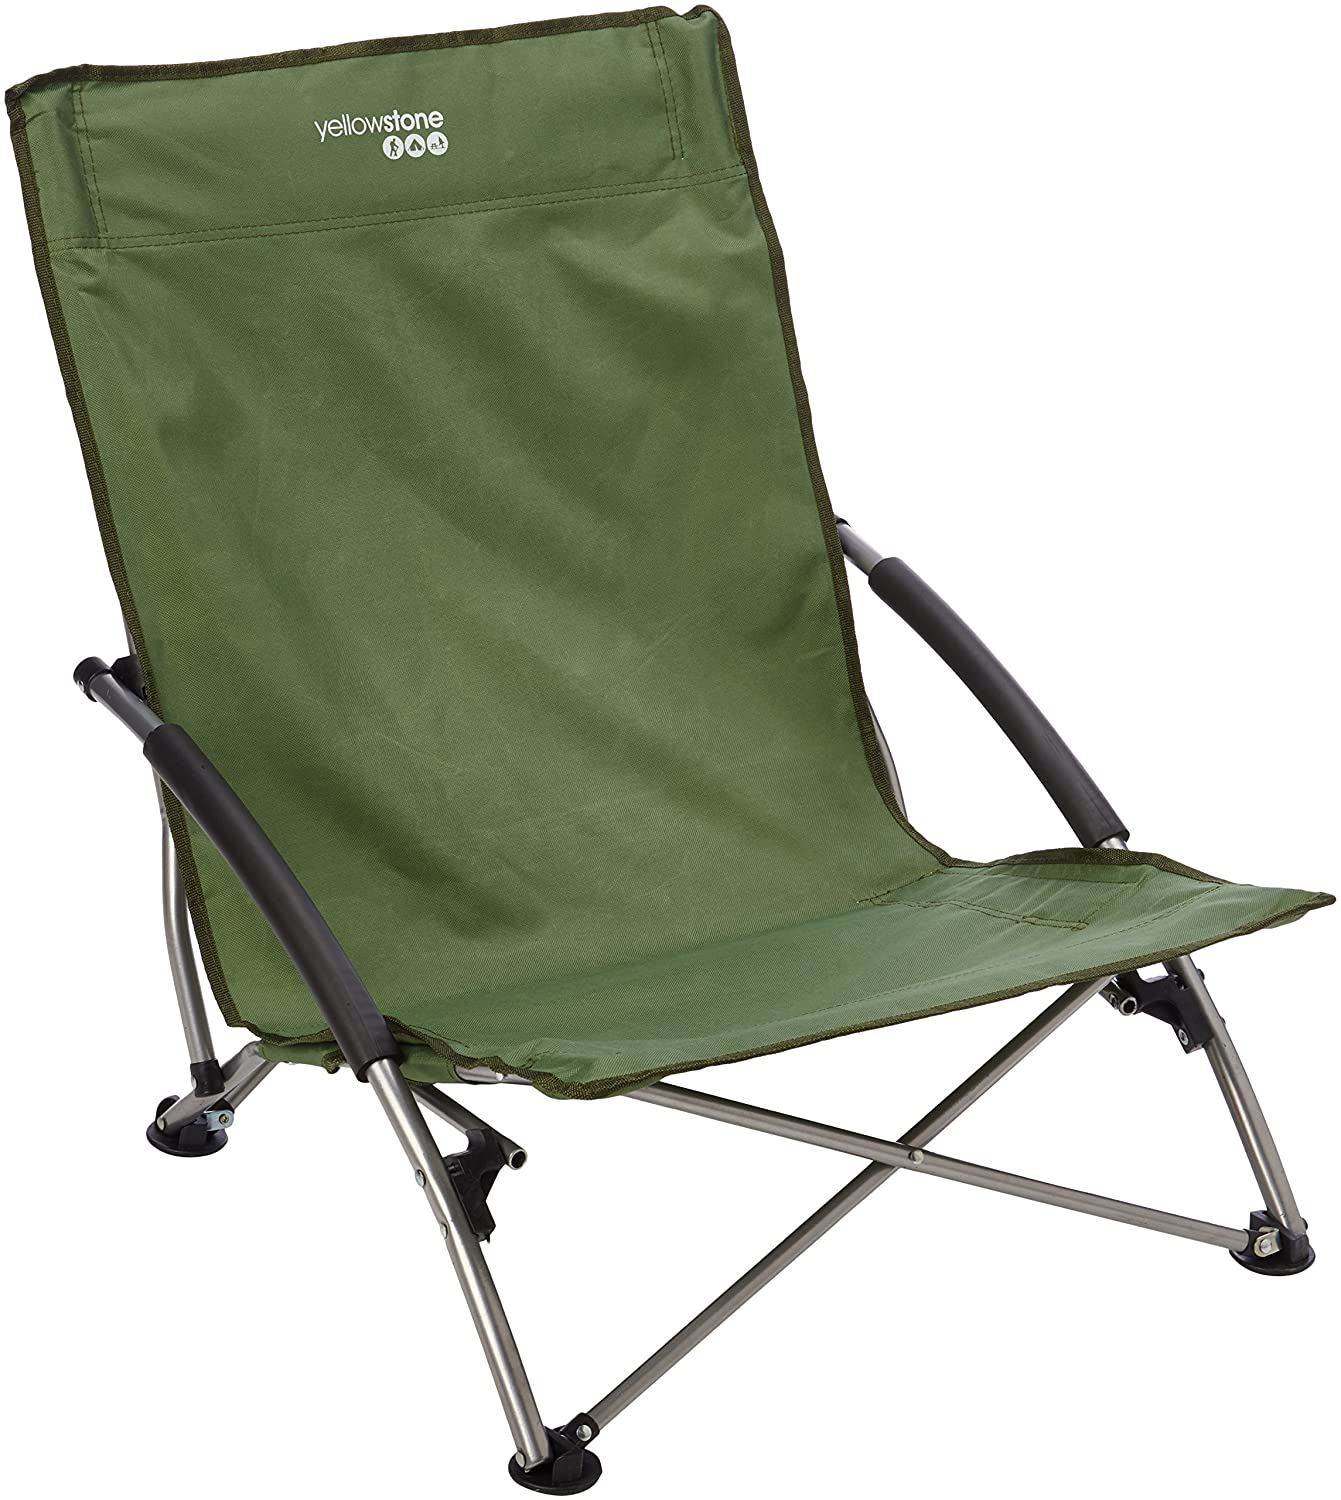 Yellowstone Lightweight Outdoor Low Profile Chair available in